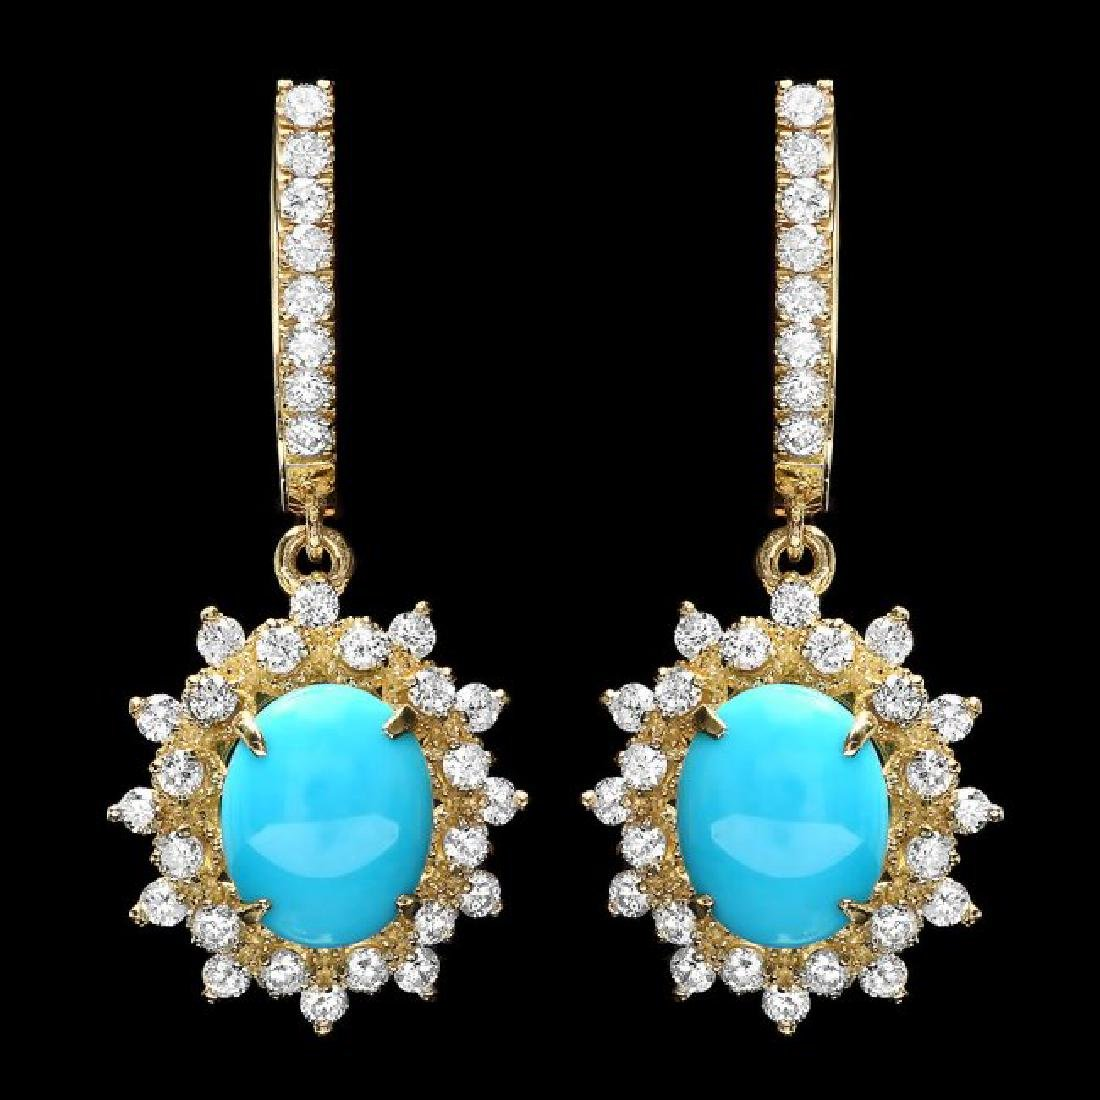 14k Gold 4.00ct Turquoise 1.50ct Diamond Earrings